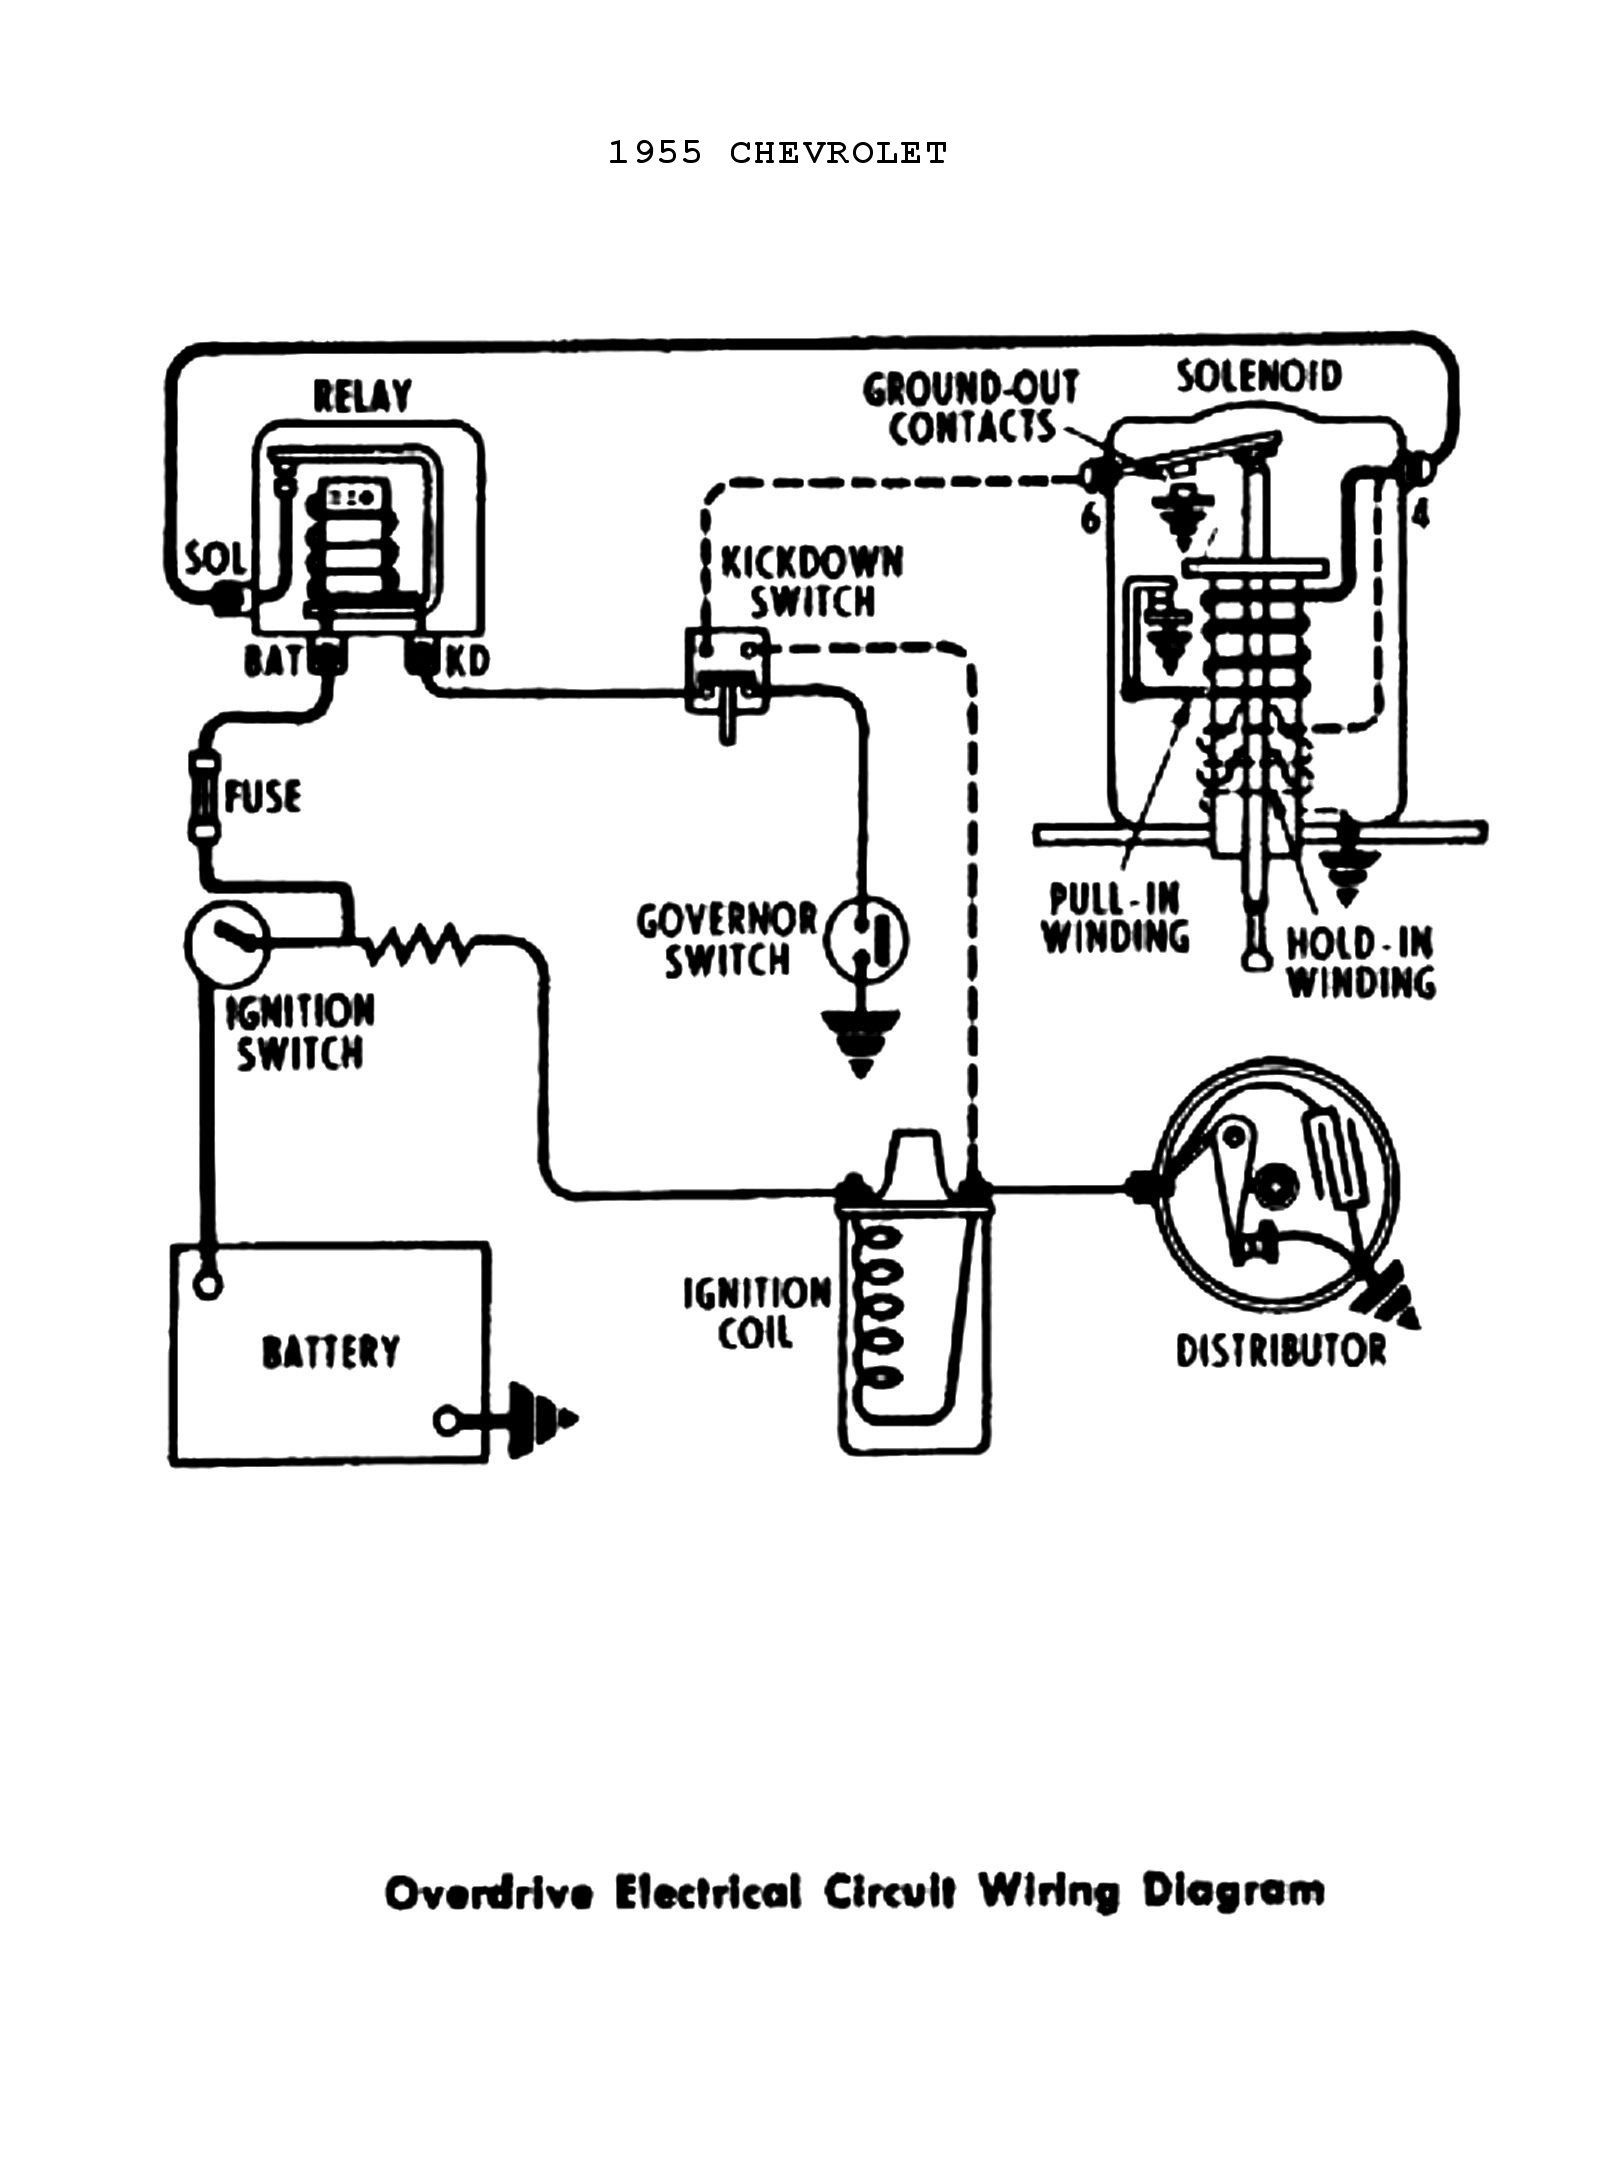 Chevy truck wiring diagram chevy wiring diagrams